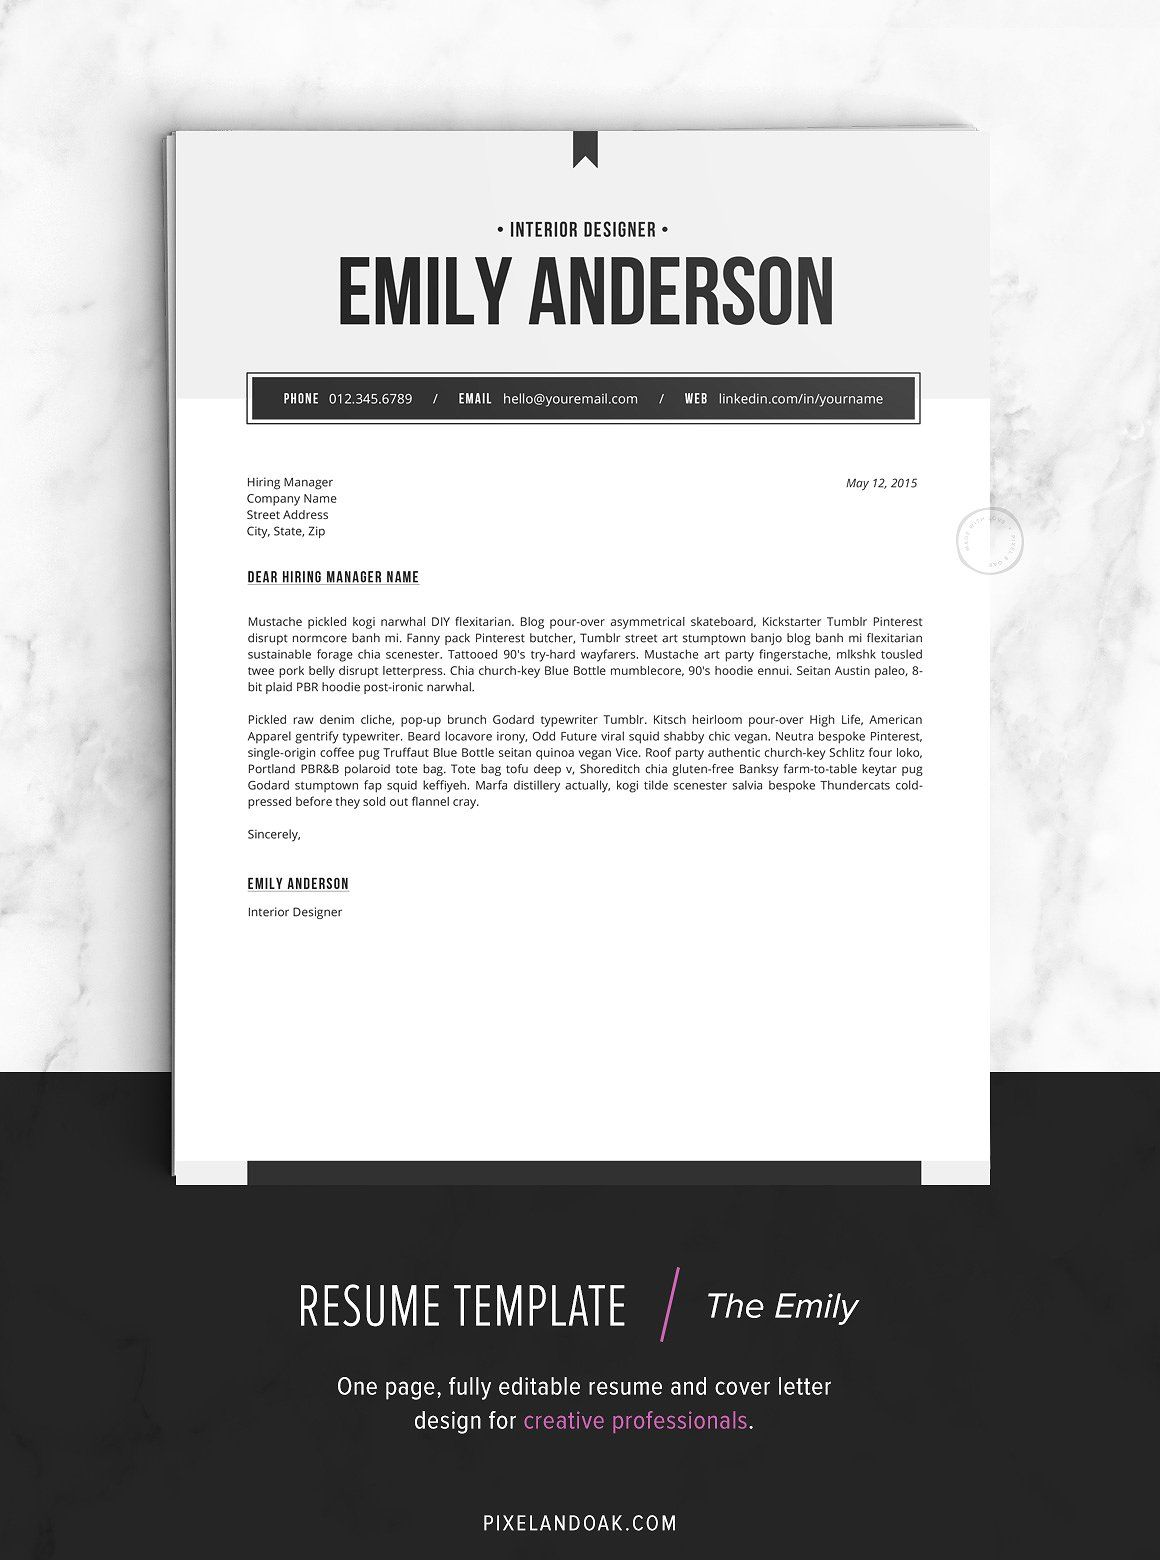 Resume Template The Emily Download Fonts Free Note Resume Template Creative Resume Templates Resume